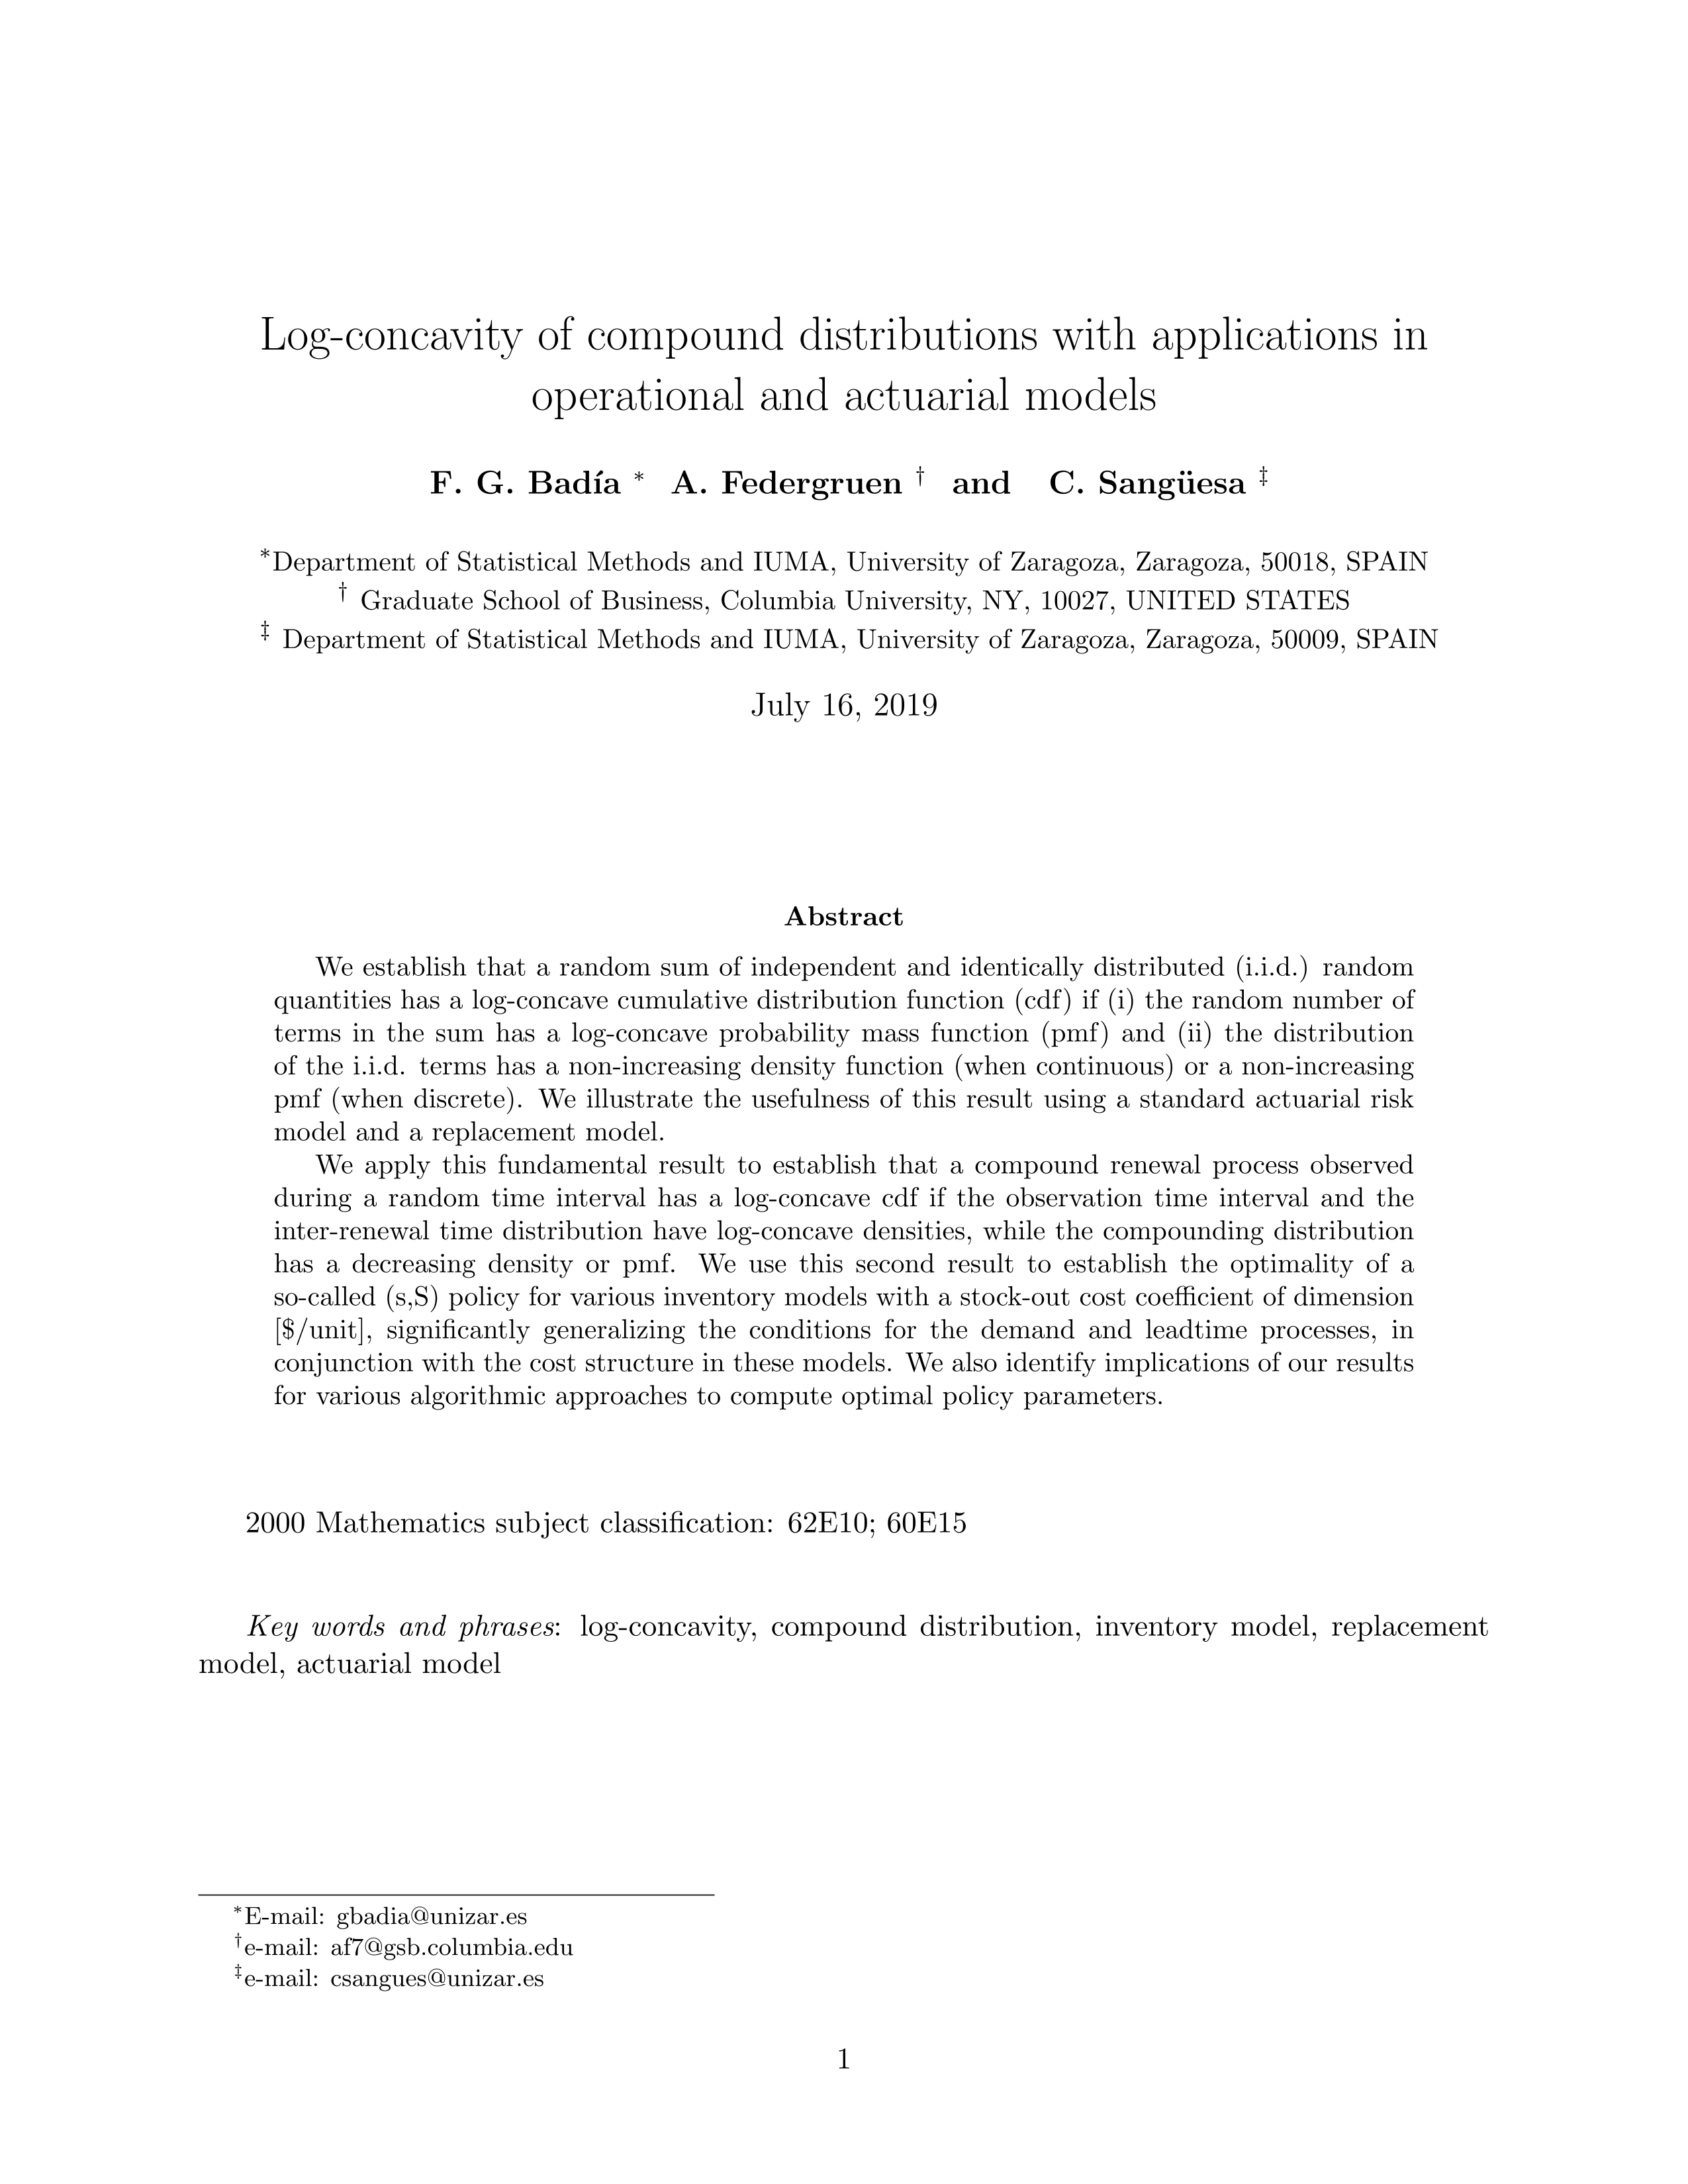 Log-concavity of compound distributions with applications in operational and actuarial models